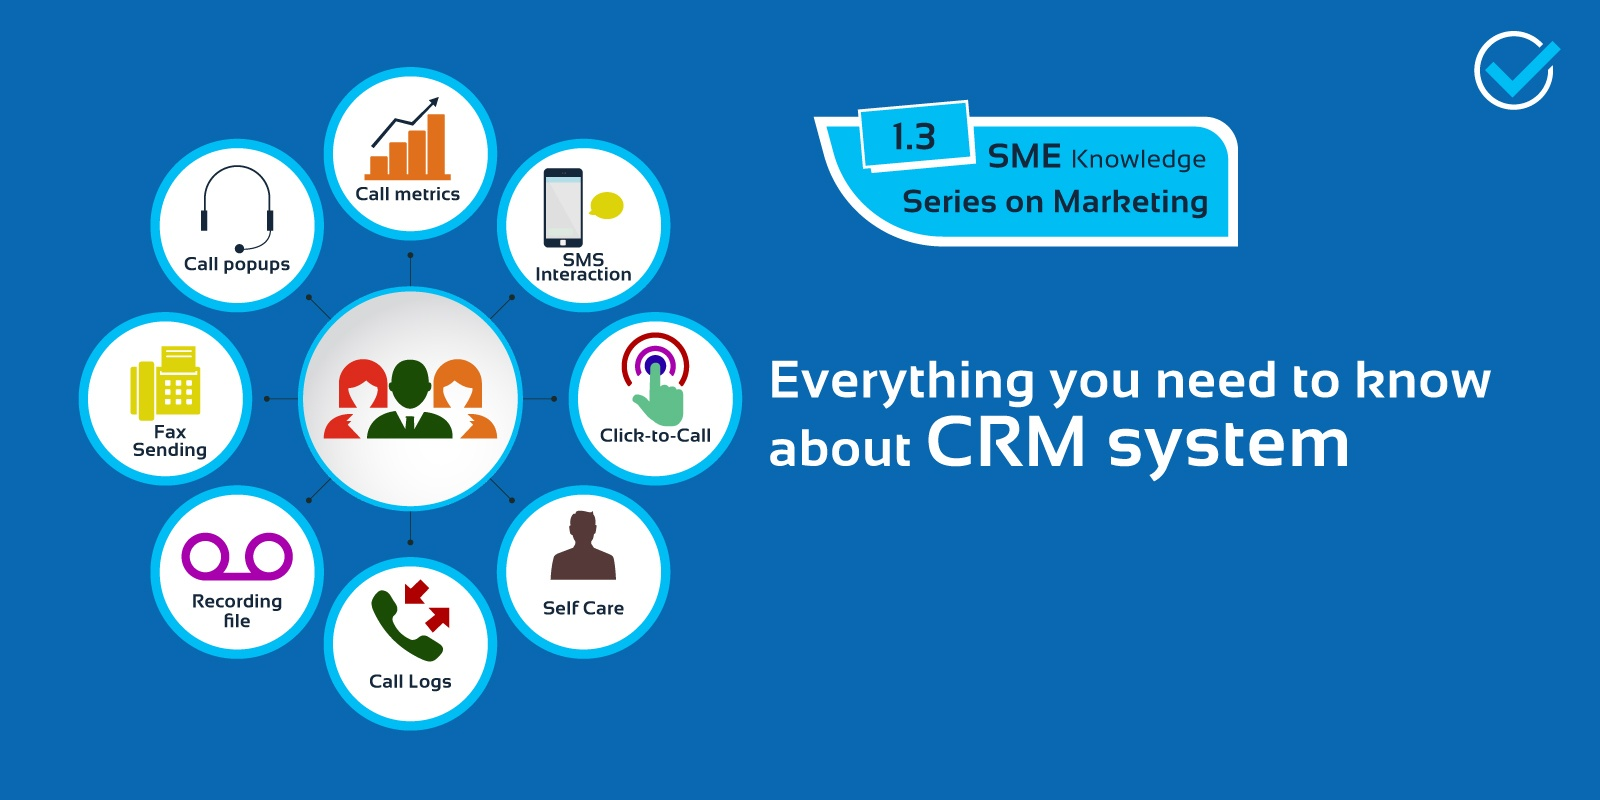 Insperme- Everything you nedd to know about CRM system